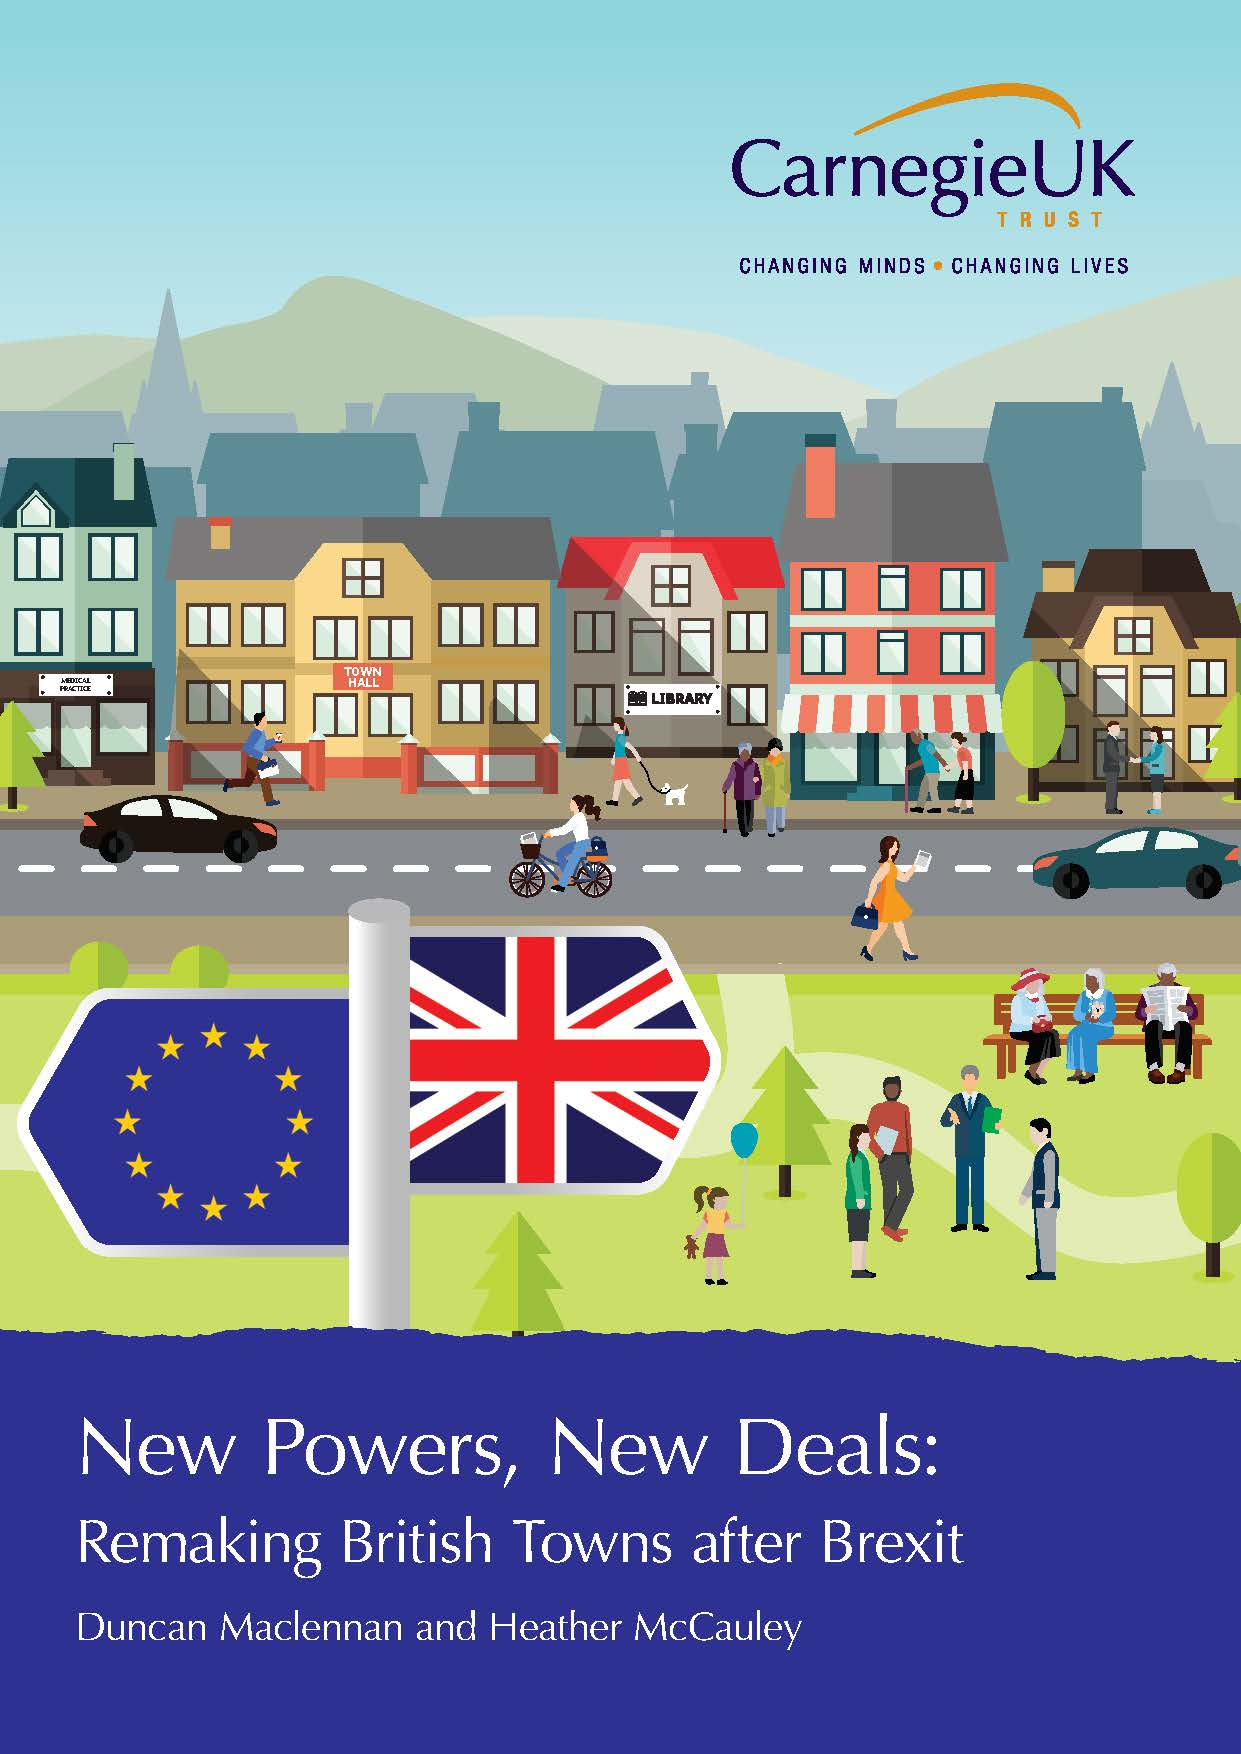 New Powers, New Deals: Remaking British Towns after Brexit